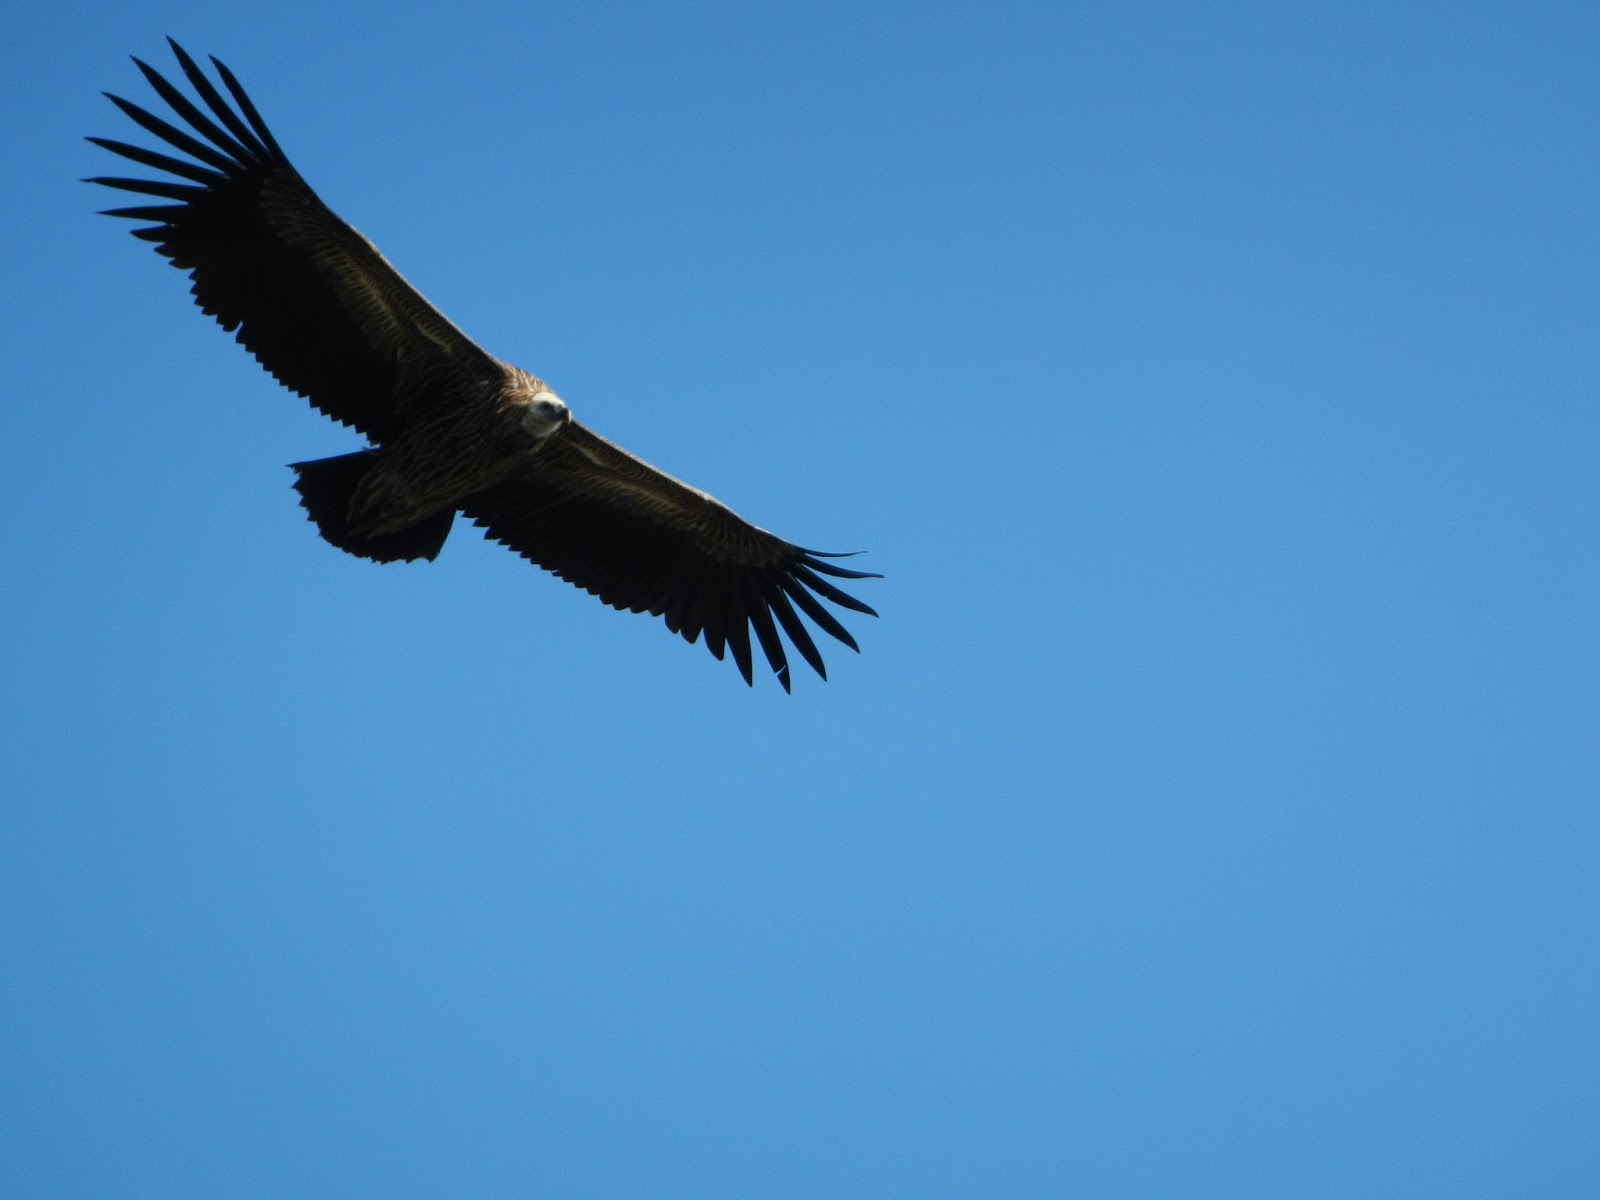 A vulture flying high up in the sky.